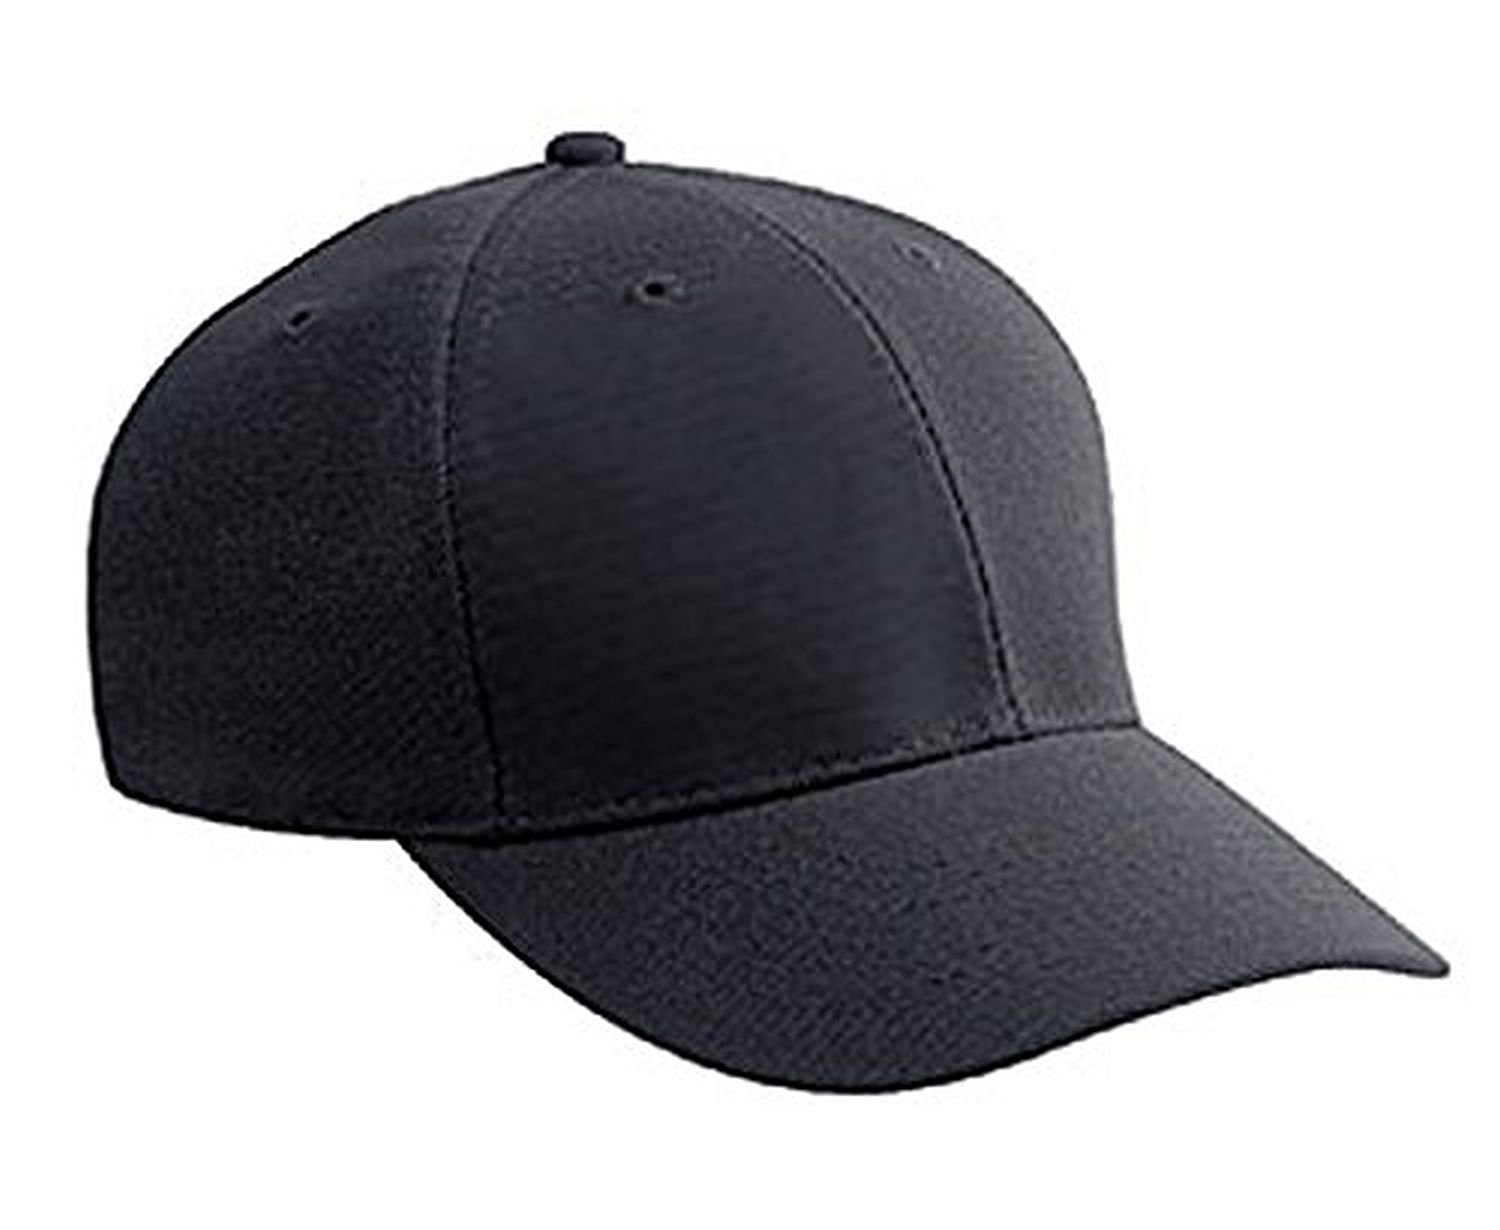 Hats & Caps Shop Wool Blend Gray Undervisor Low Profile Pro Style Caps - By TheTargetBuys